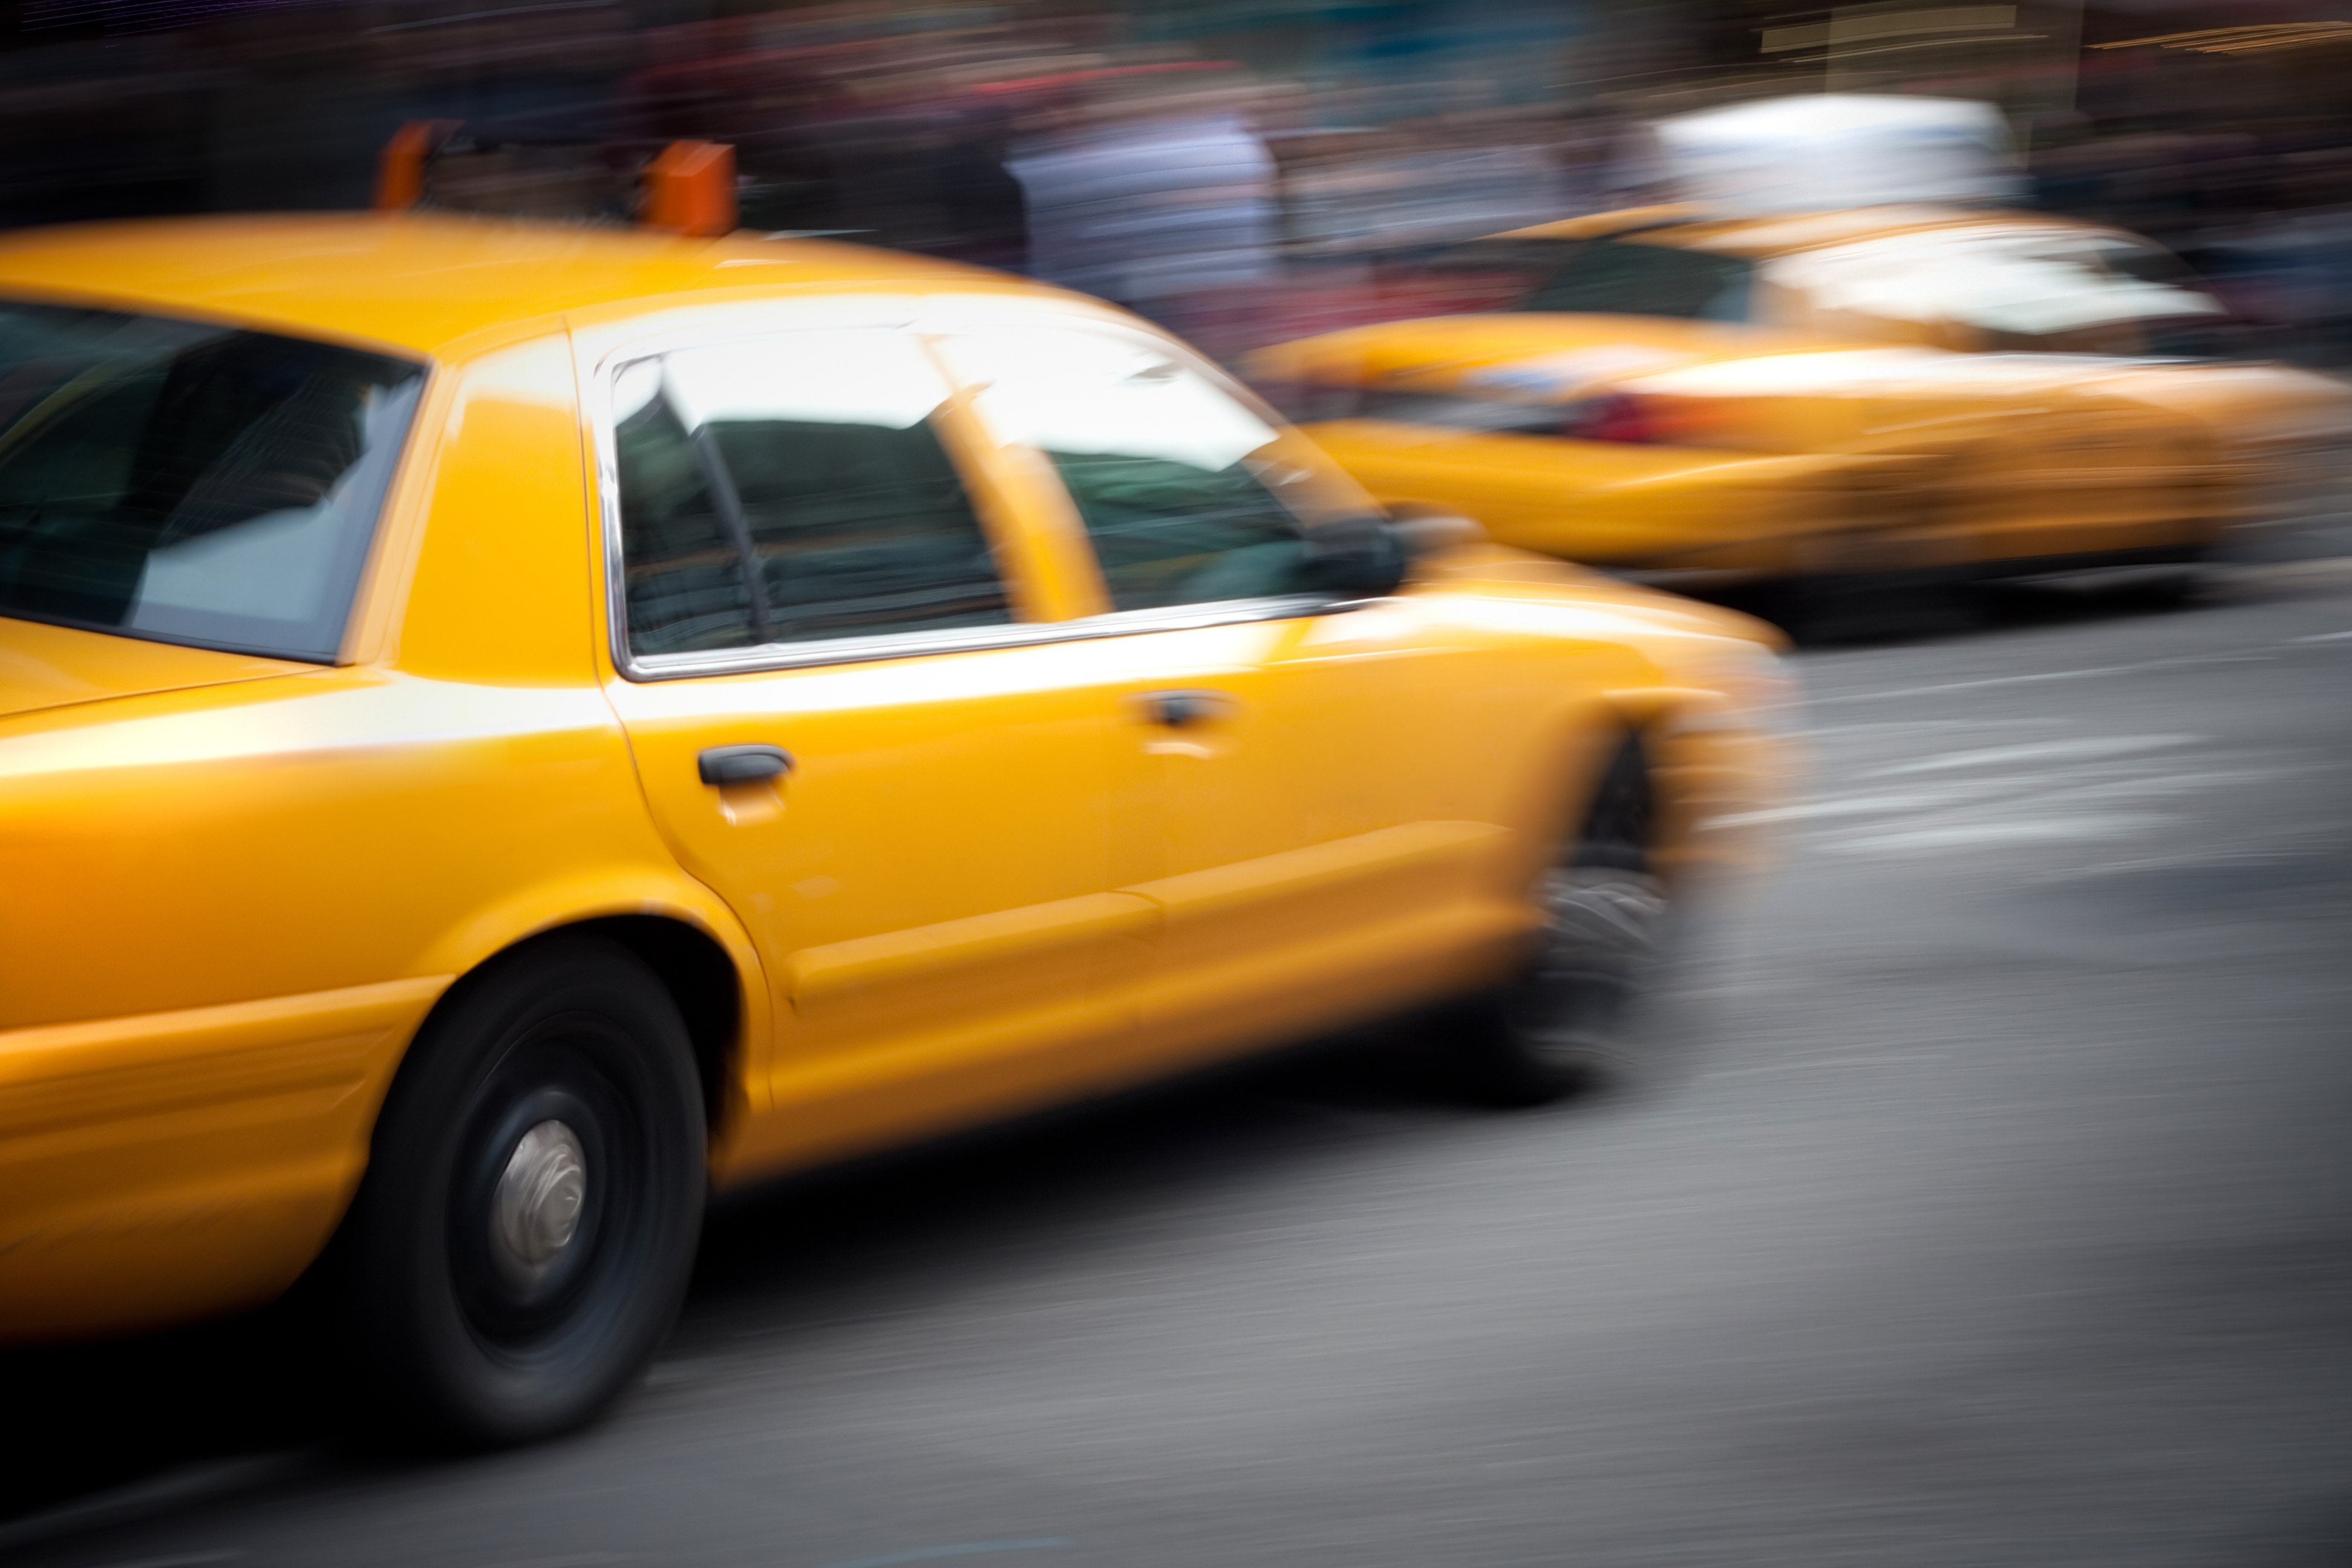 Taxi Leaving